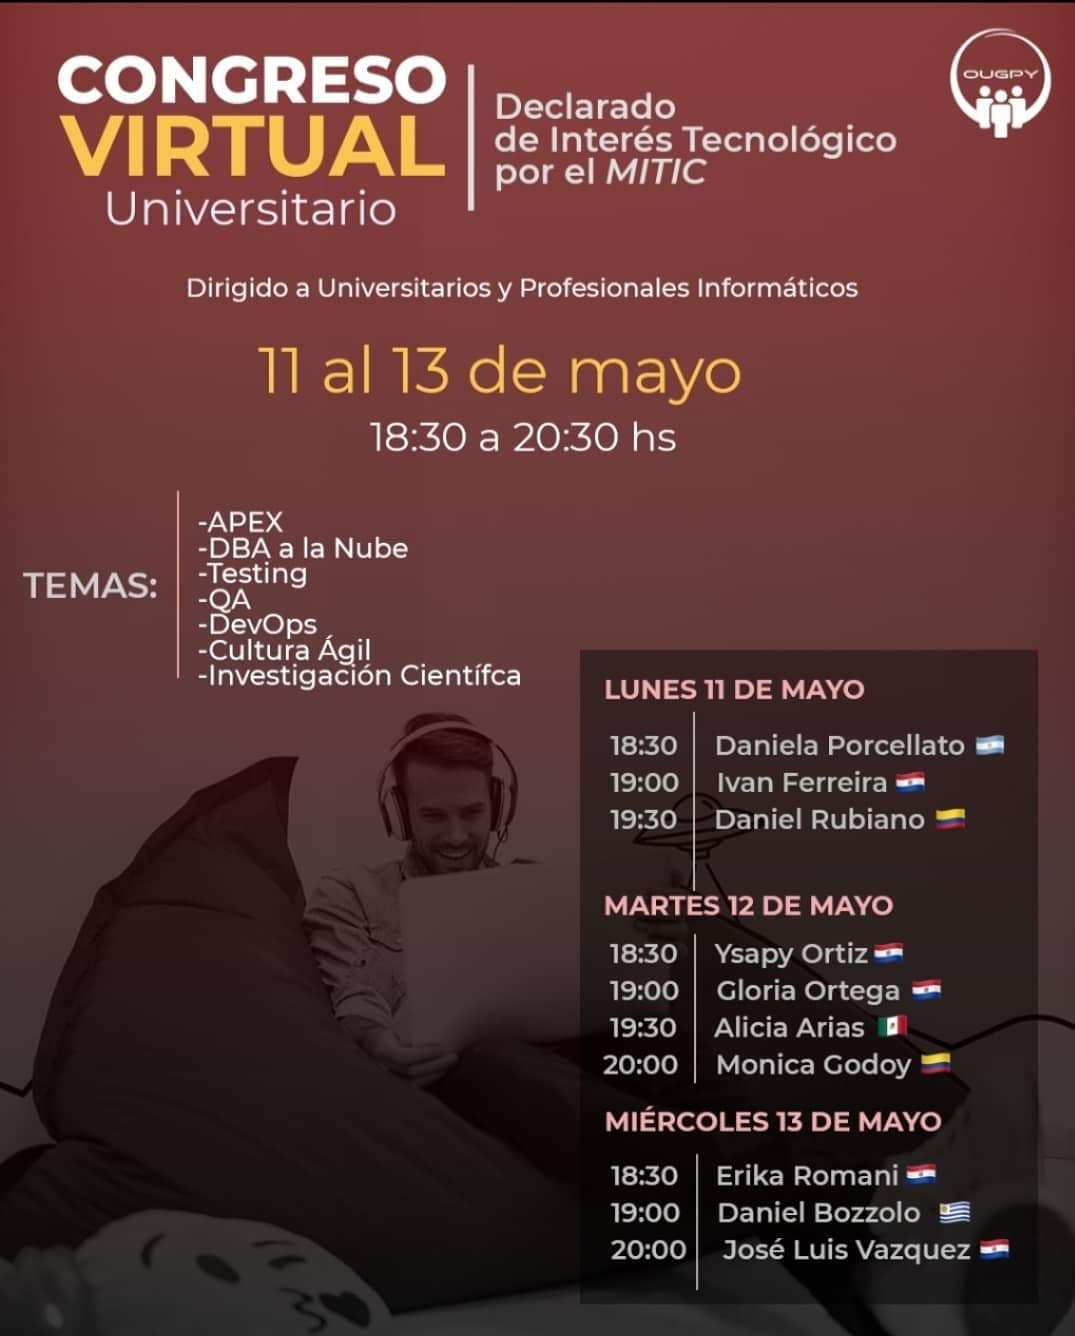 Congreso virtual universitario - 11 al 13 de mayo